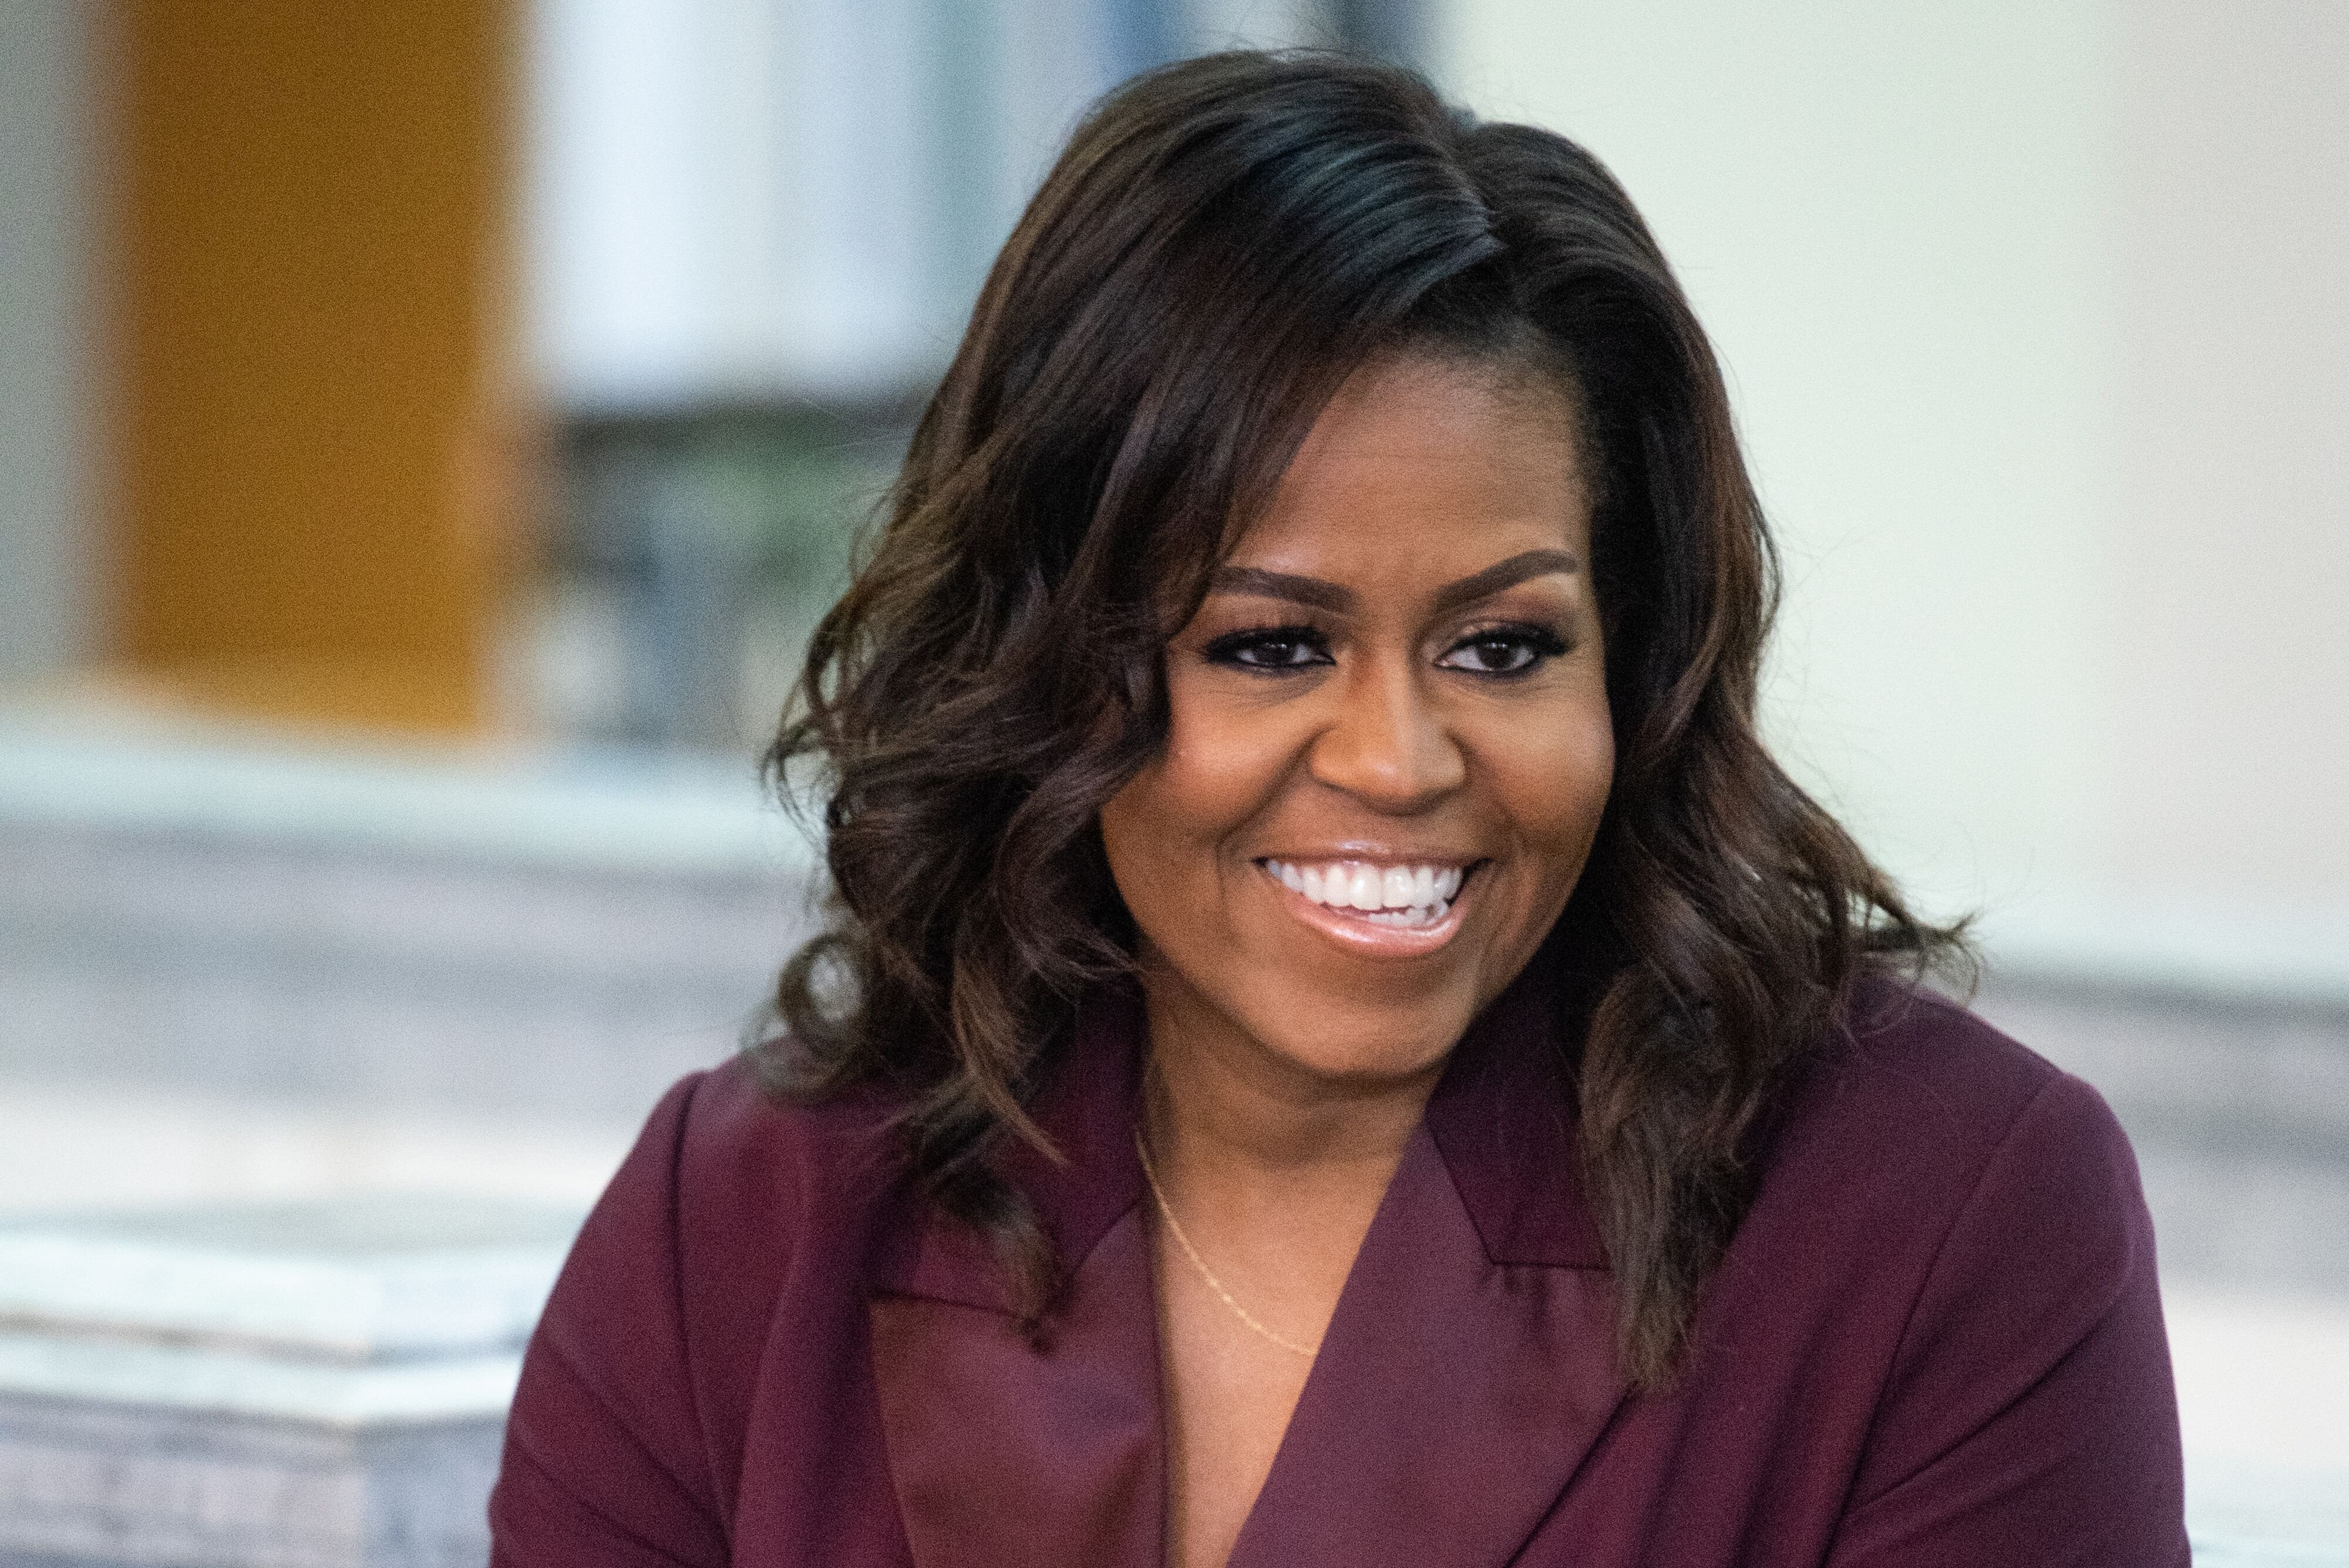 """Michelle Obama promoting her book, """"Becoming"""" in Tacoma, Washington in March 2019. 